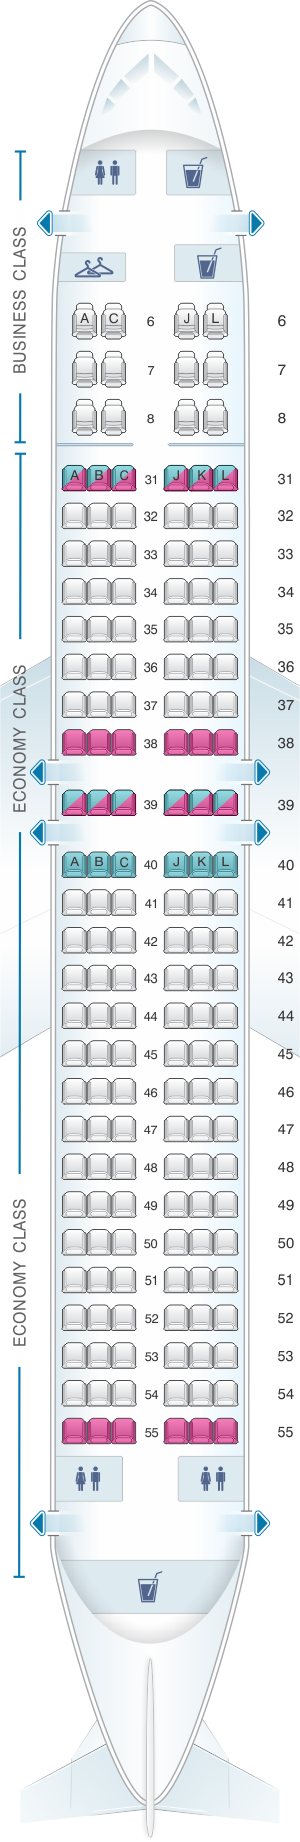 Seat map for China Eastern Airlines Boeing B737 800 162PAX